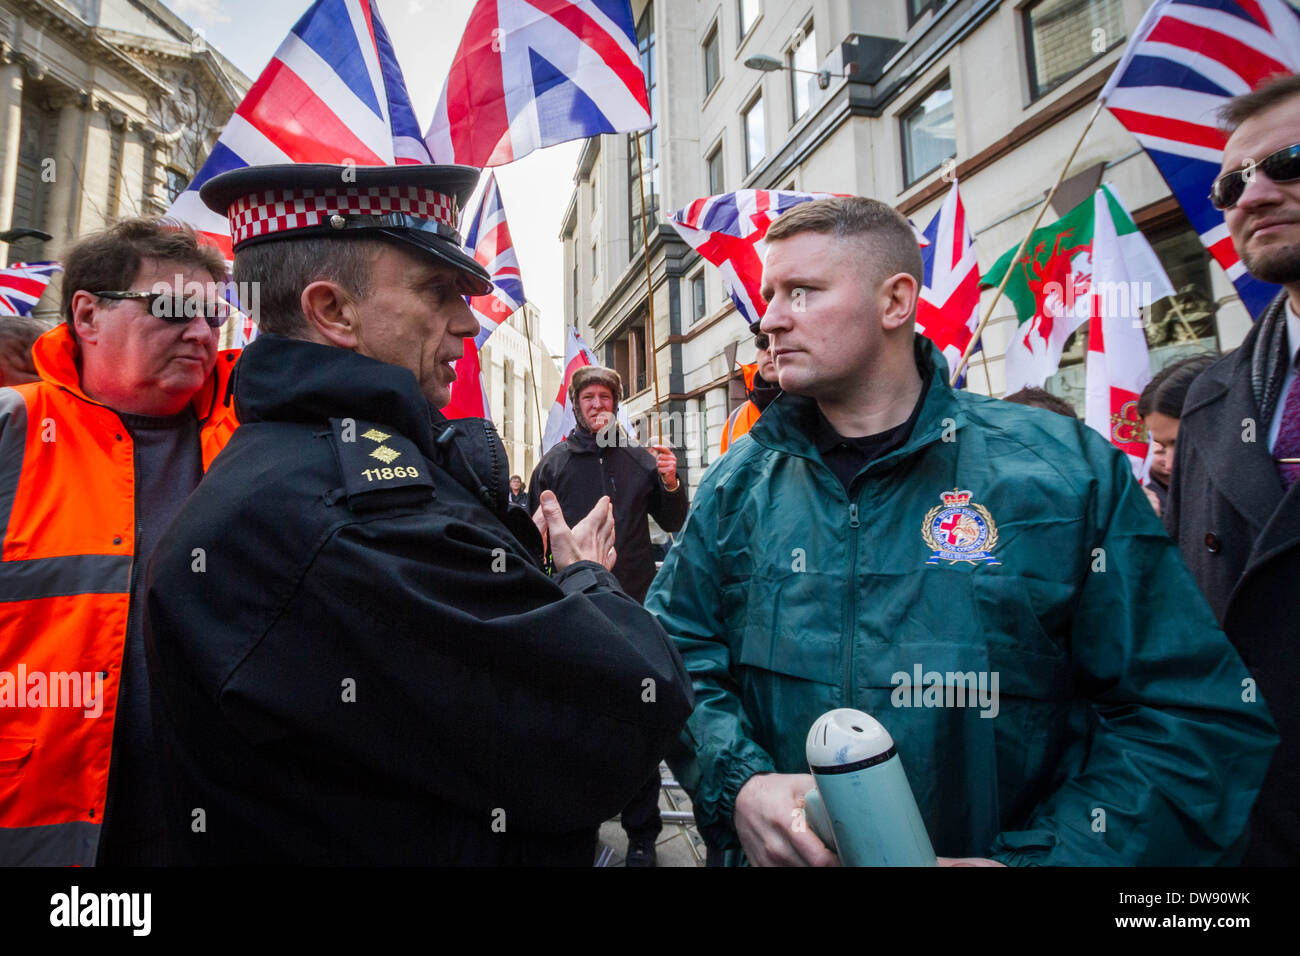 Paul Golding leader of Britain First right-wing patriot group outside Old Bailey court in London. - Stock Image